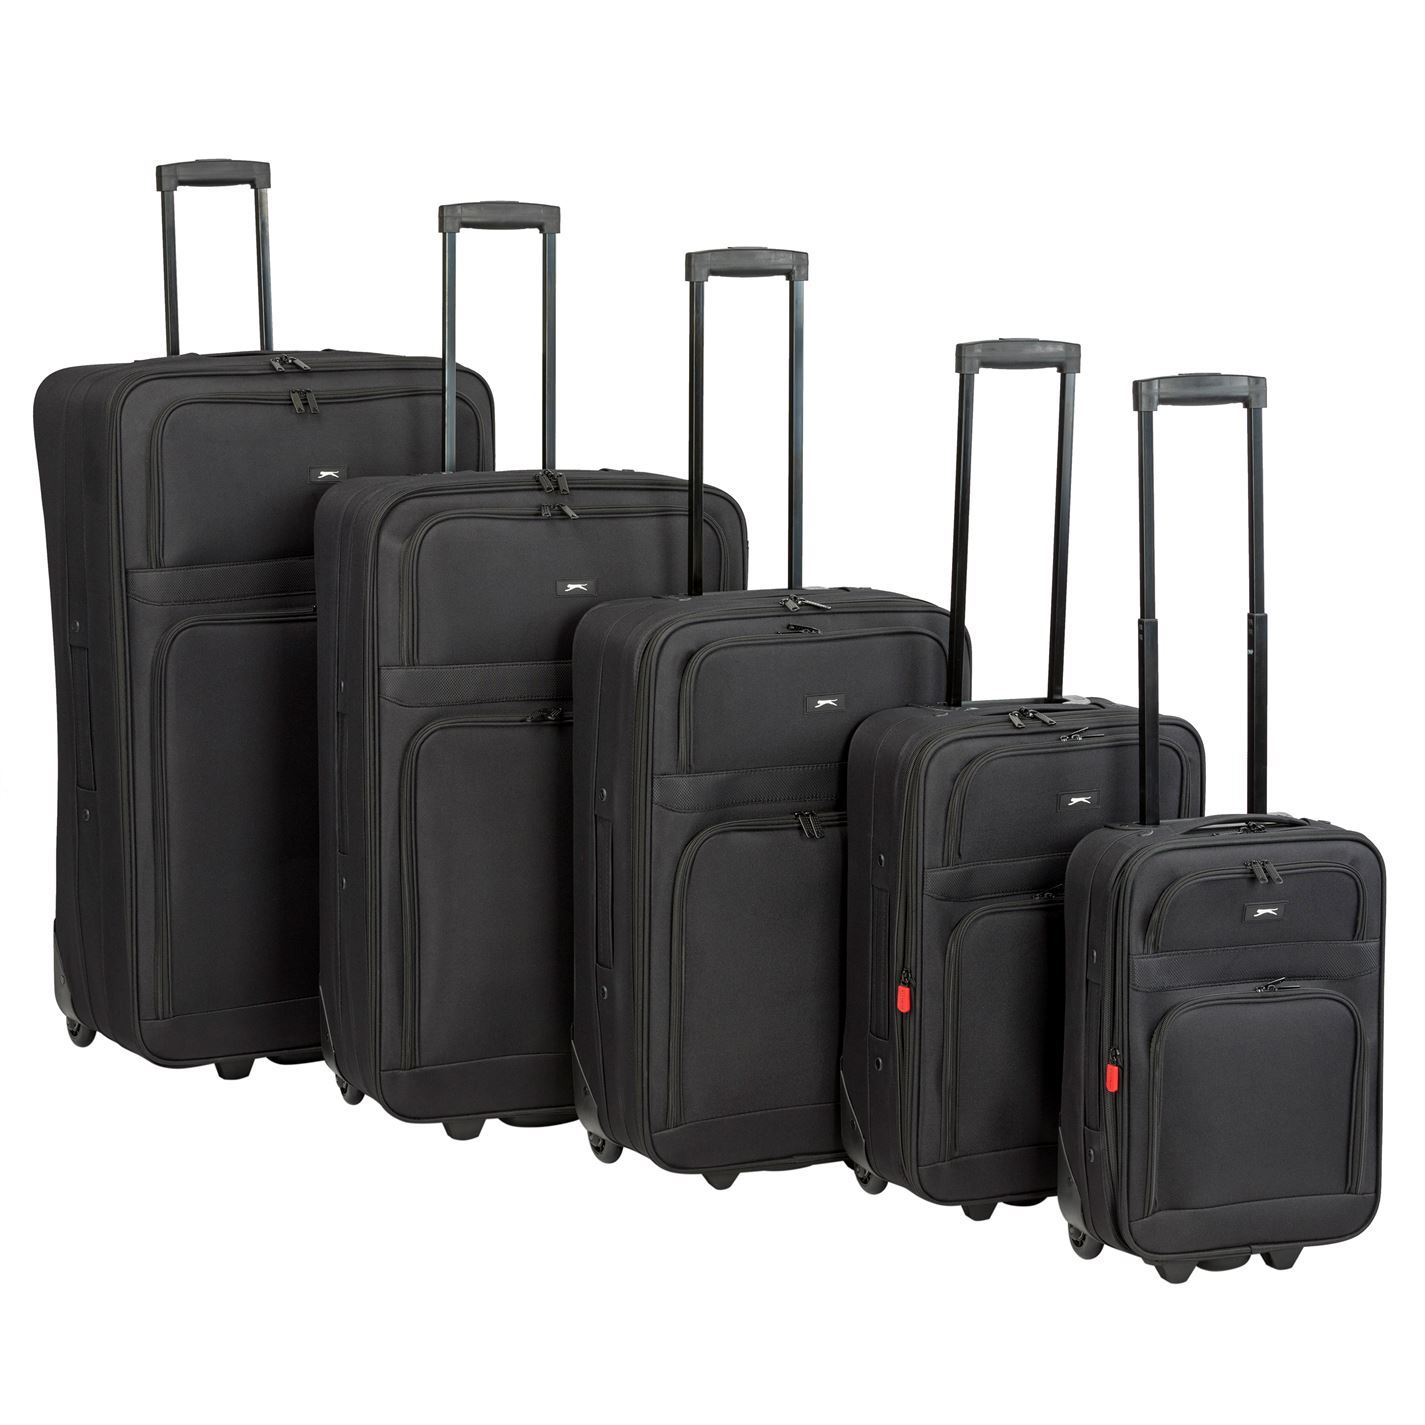 Slazenger Travel Luggage Lightweight Wheeled Holdall Carryall ... a5fd324a7